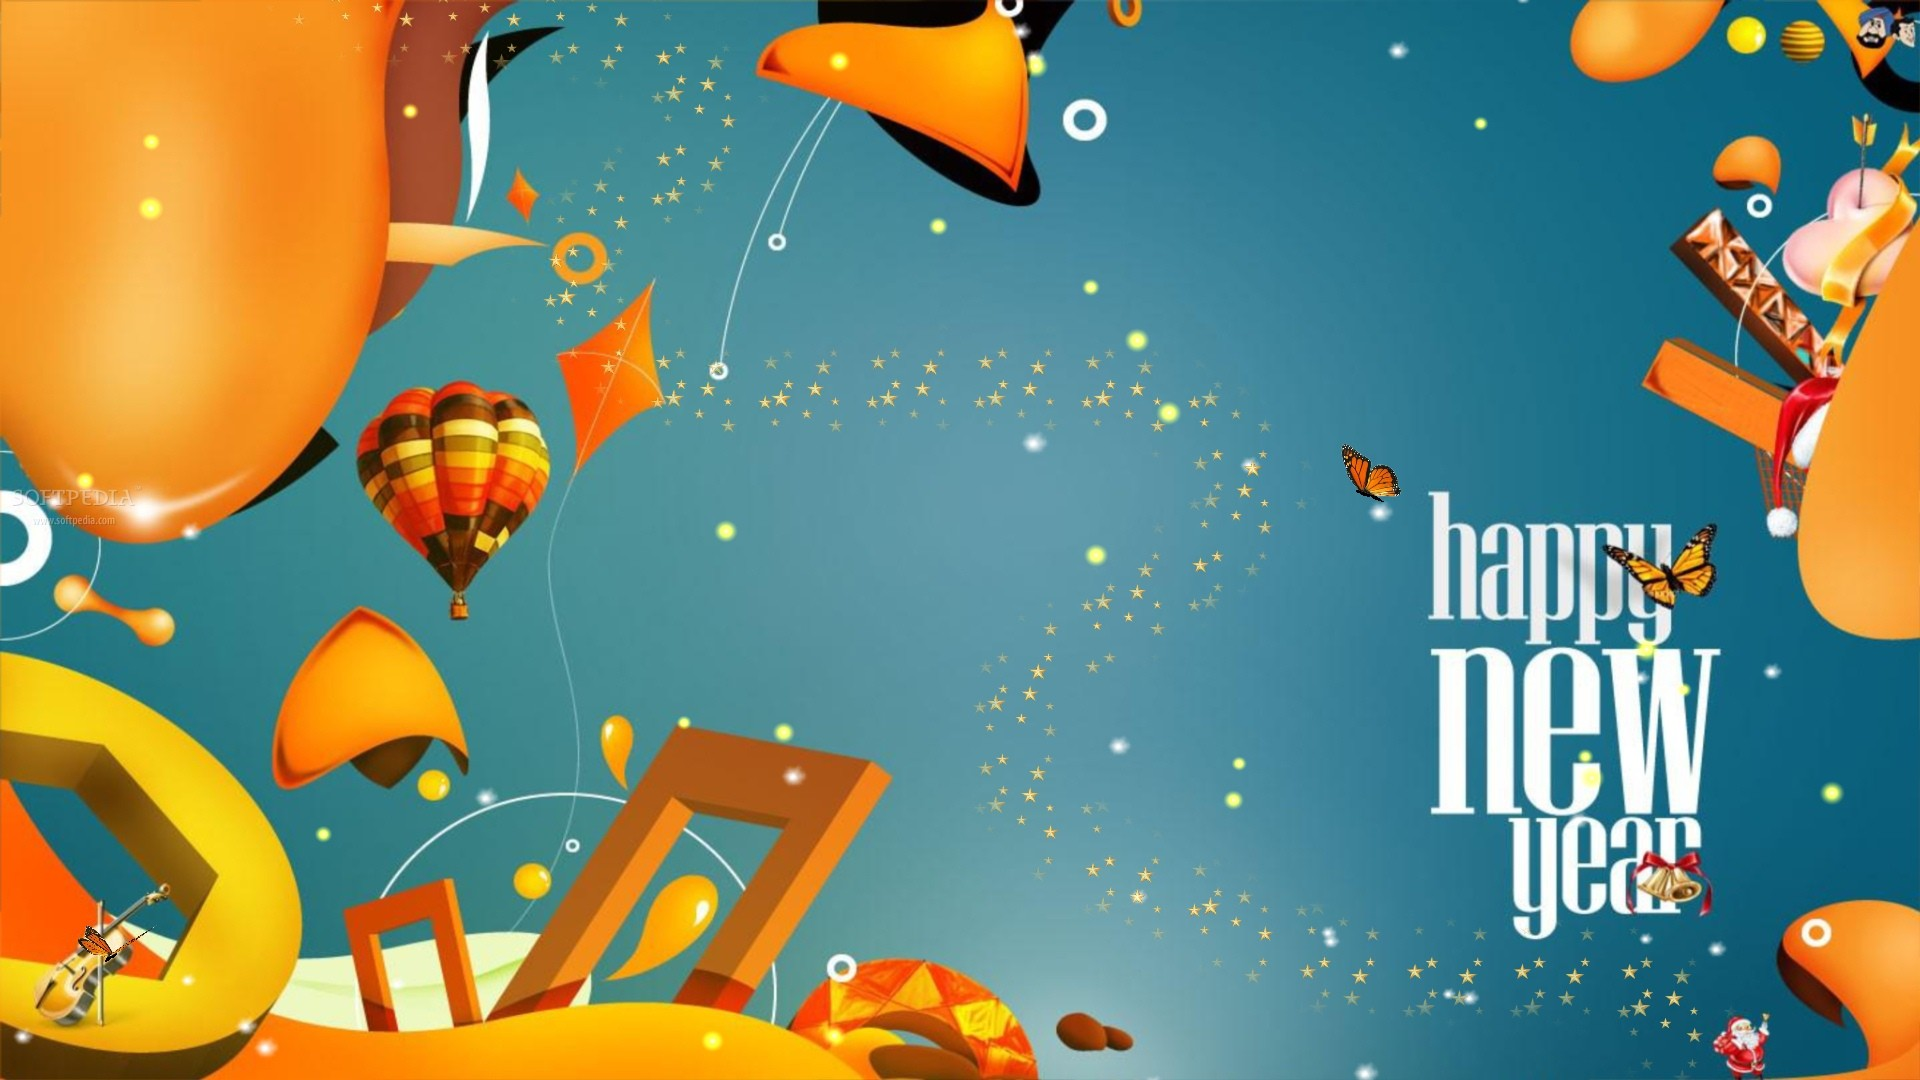 45 Beautiful Happy New Year Wallpapers HD - Lava360